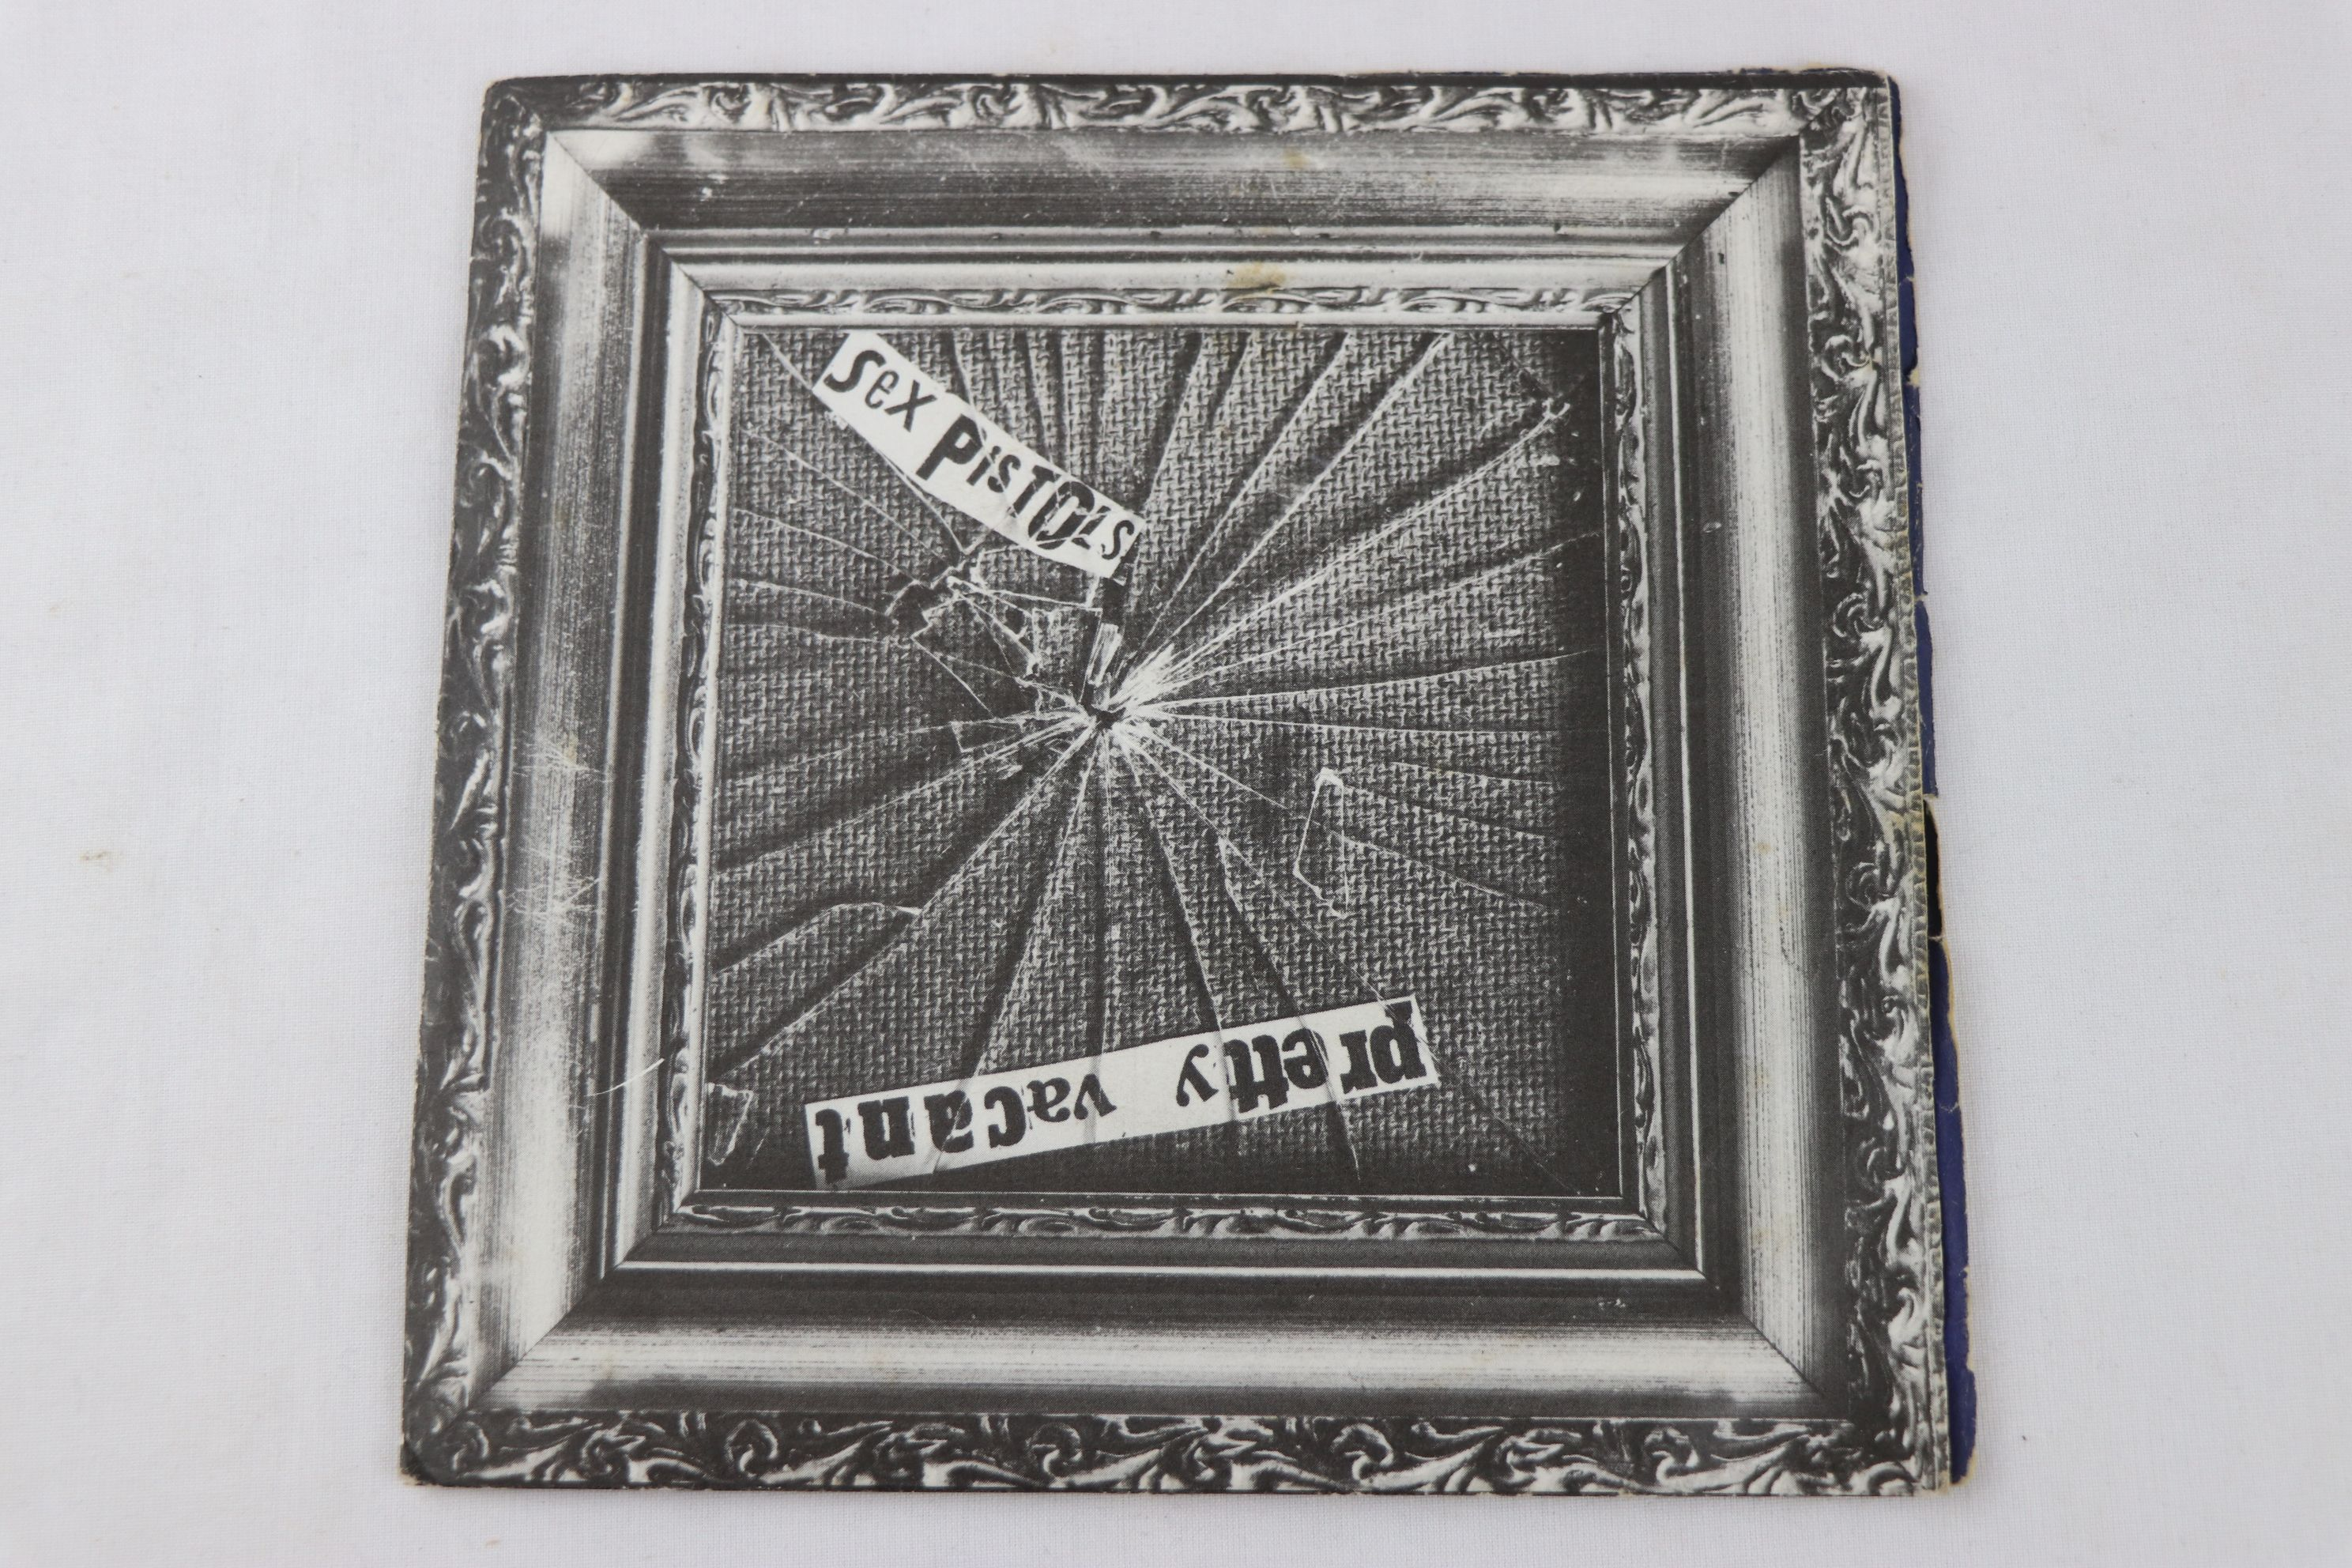 PUNK - SEX PISTOLS - PACK OF 7 ORIGINAL PRESSING SINGLES. 1. GOD SAVE THE QUEEN, 1977 VIRGIN RECORDS - Image 7 of 8